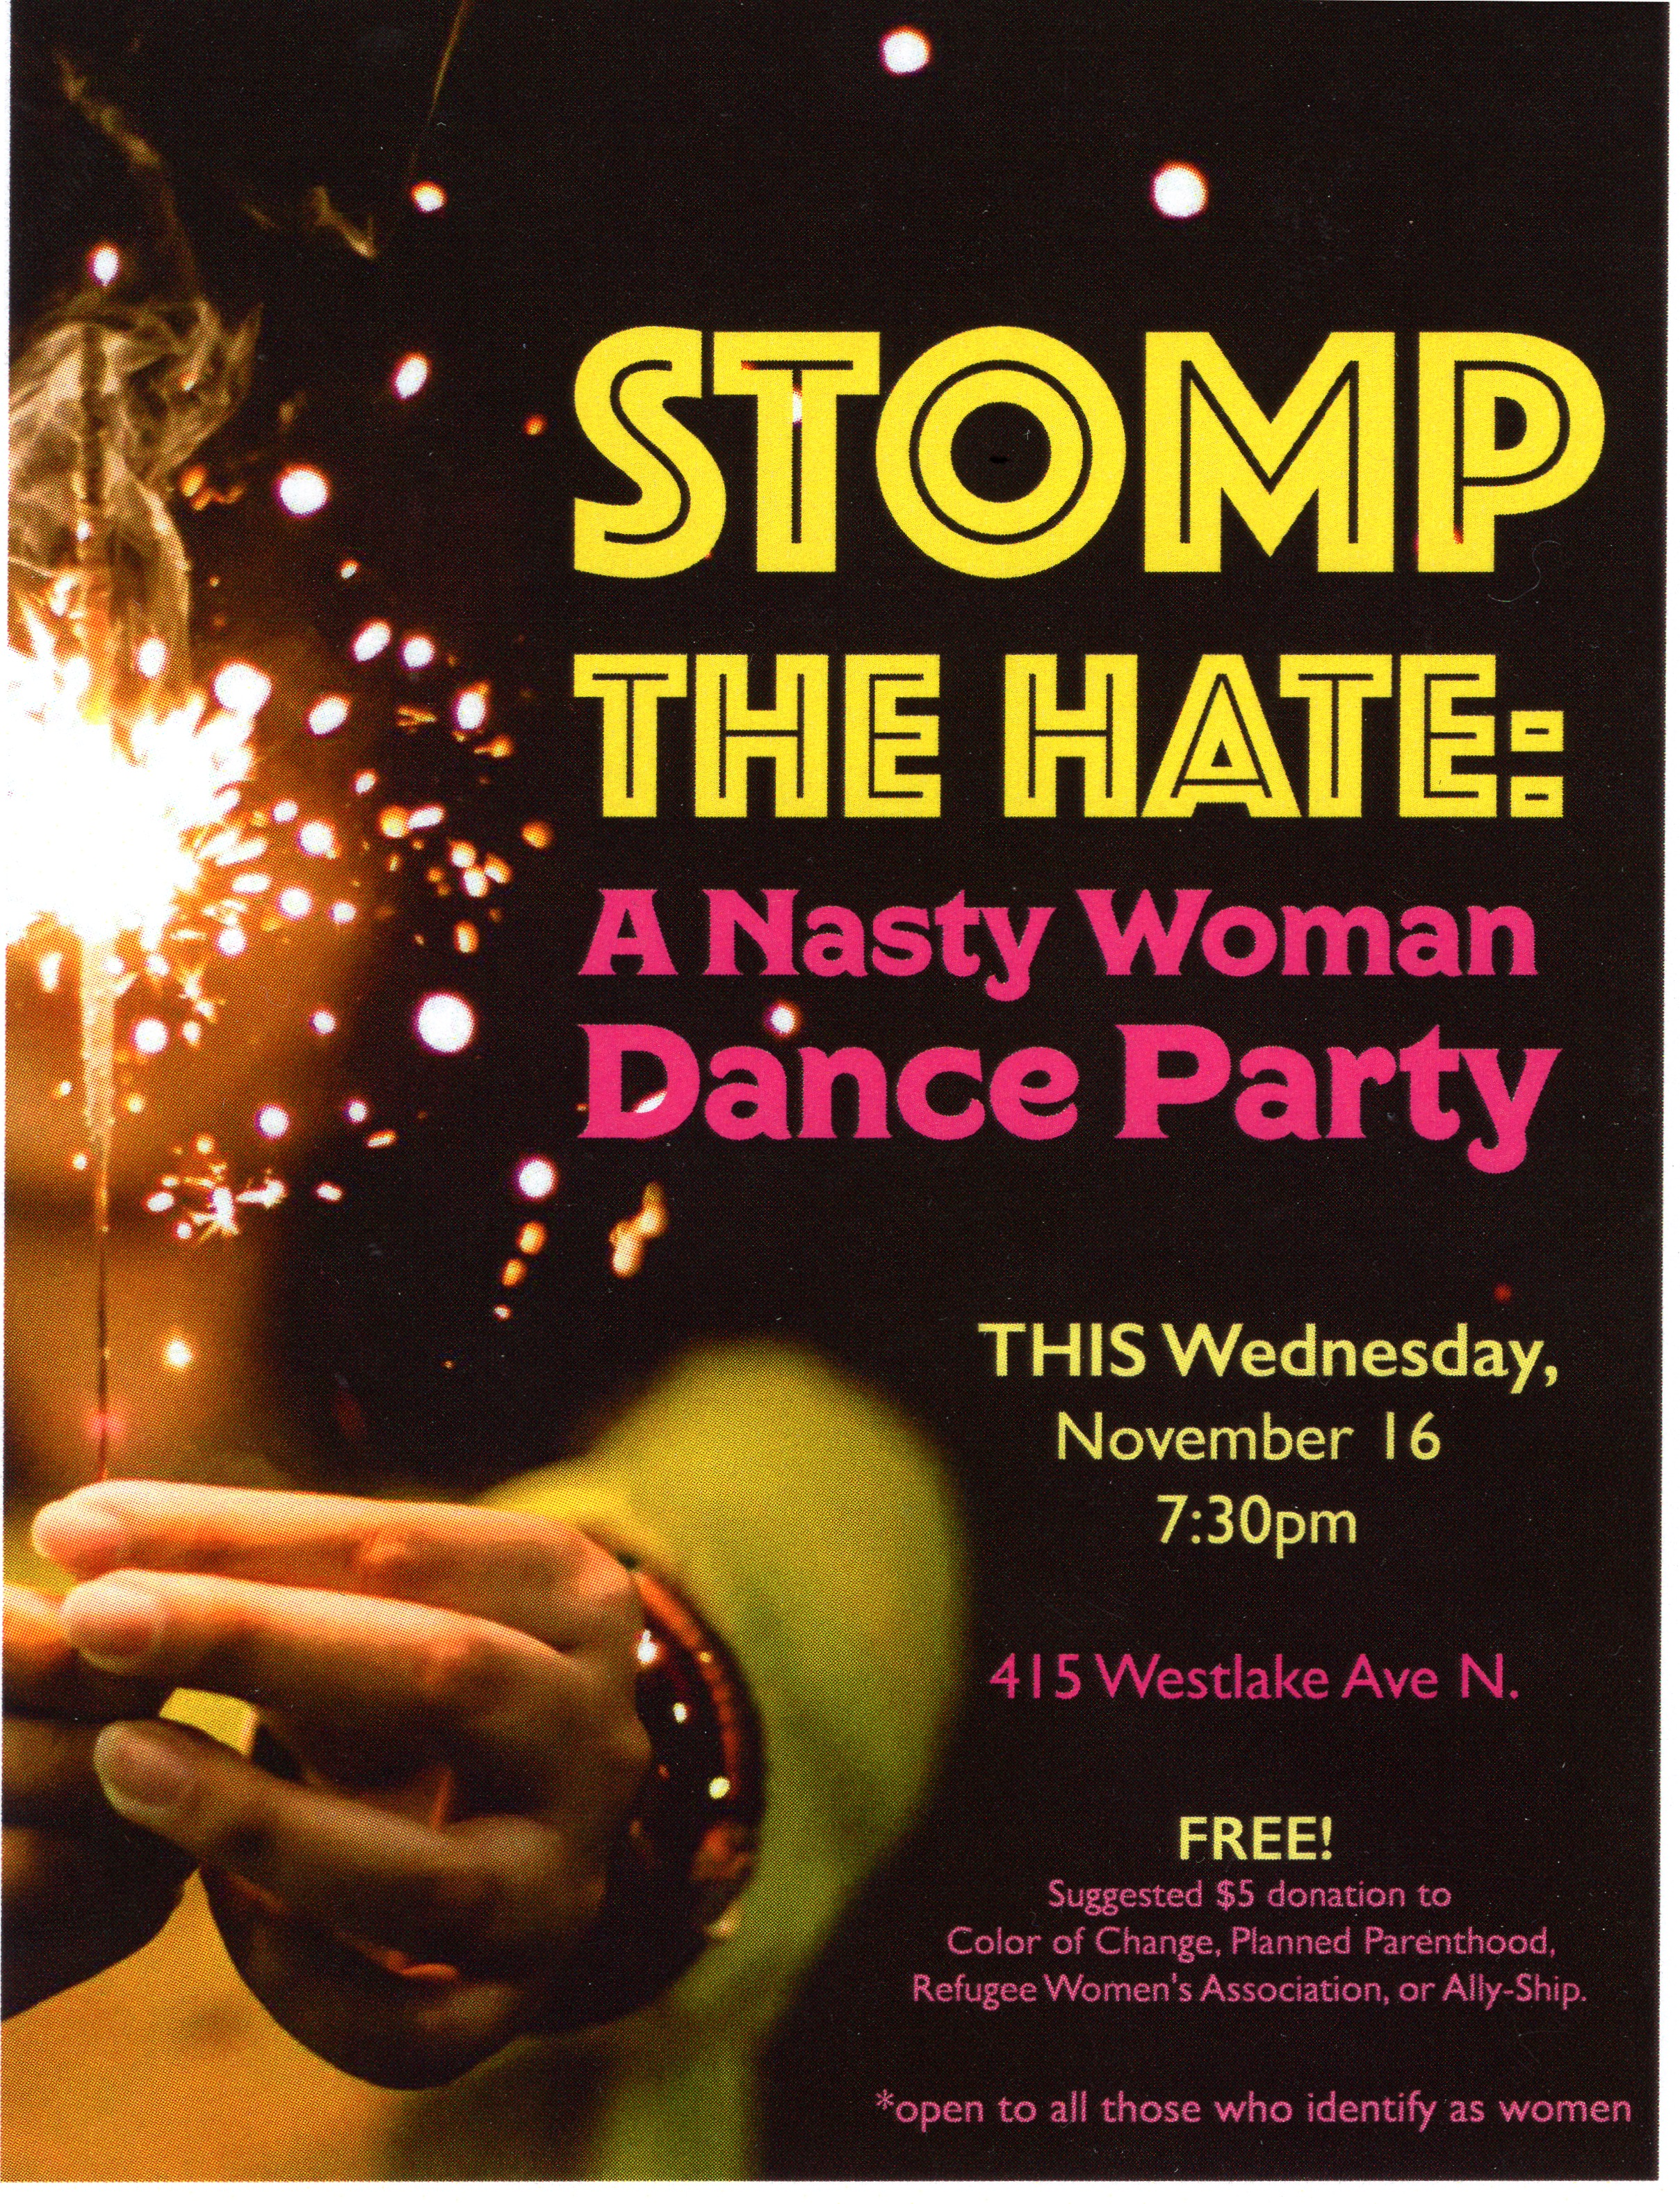 Stomp The Hate Seattle021.jpg